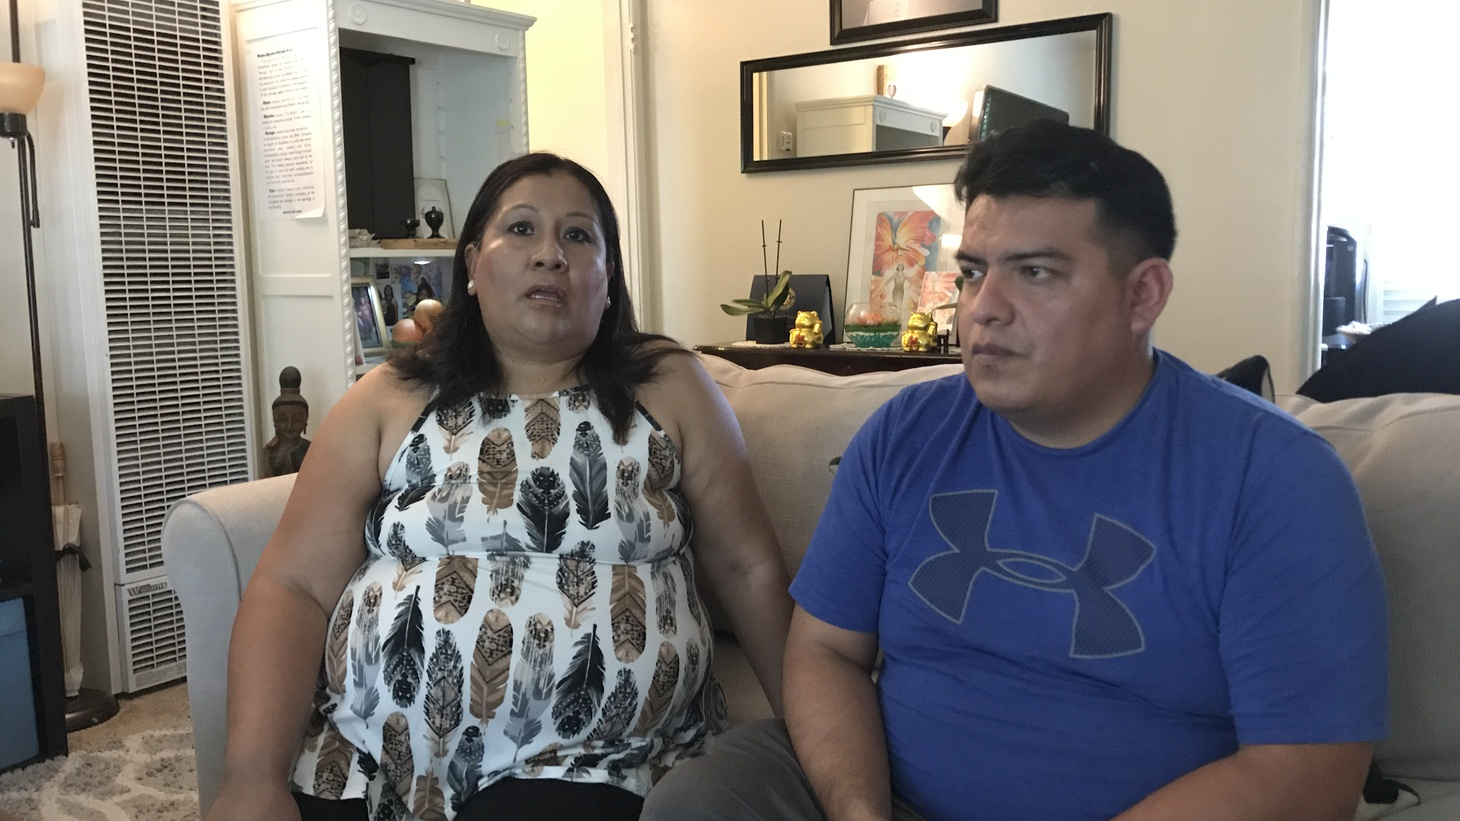 Esperanza and Sergio Corona de Rosas are among a small fraction of undocumented immigrants in California that have received COVID-19 disaster aid from California. Esperanza lost her job as a nanny, but she isn't eligible for state or federal unemployment due to her citizenship status.